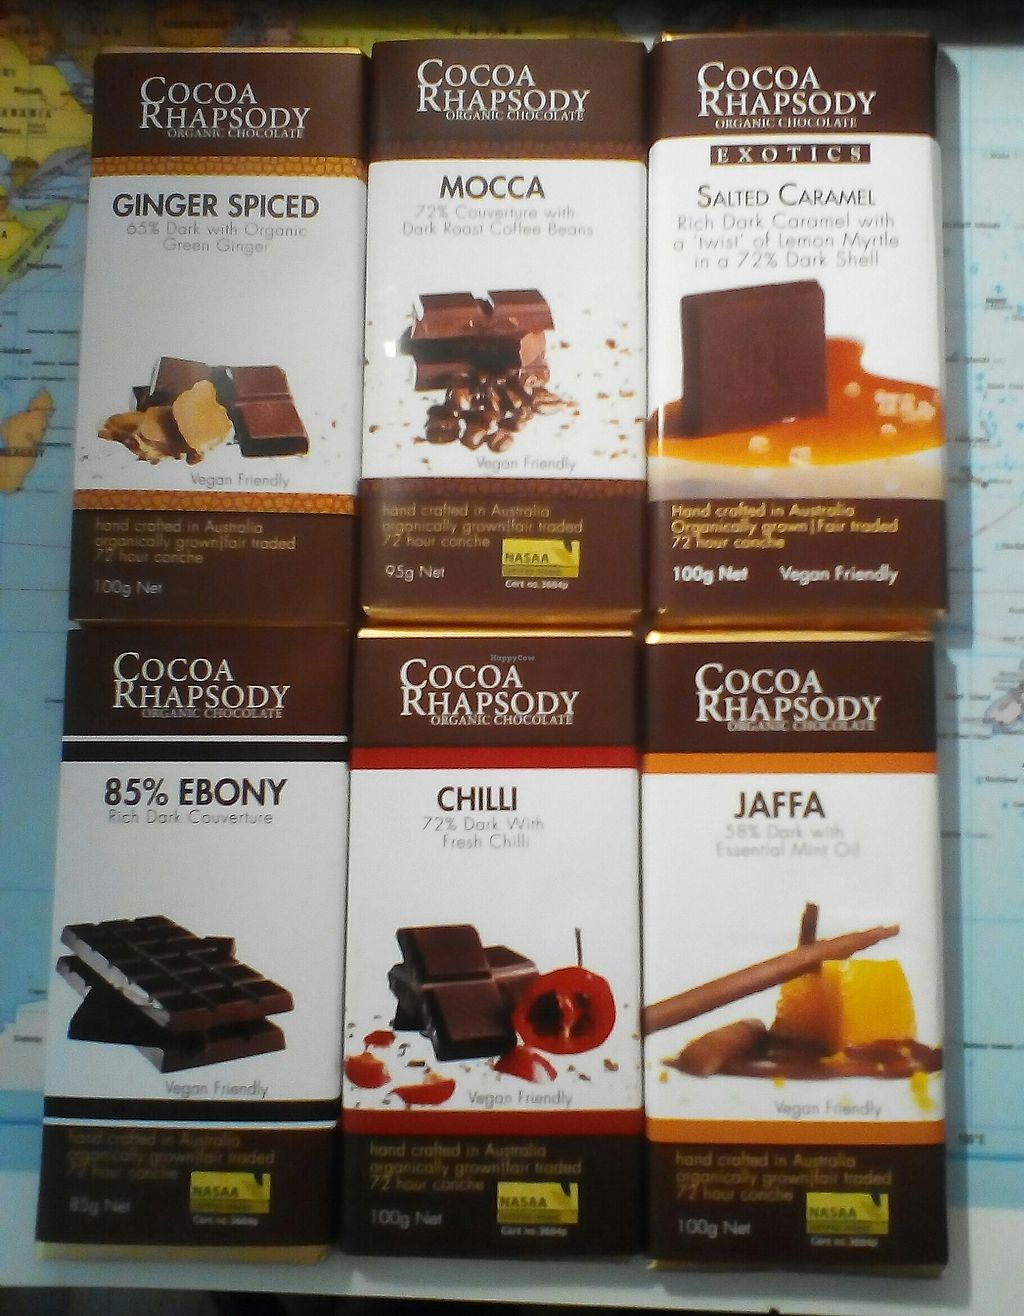 """Photo of Cocoa Rhapsody  by <a href=""""/members/profile/wuasabai"""">wuasabai</a> <br/>Some of the vegan chocolate varieties <br/> December 21, 2017  - <a href='/contact/abuse/image/107631/337693'>Report</a>"""